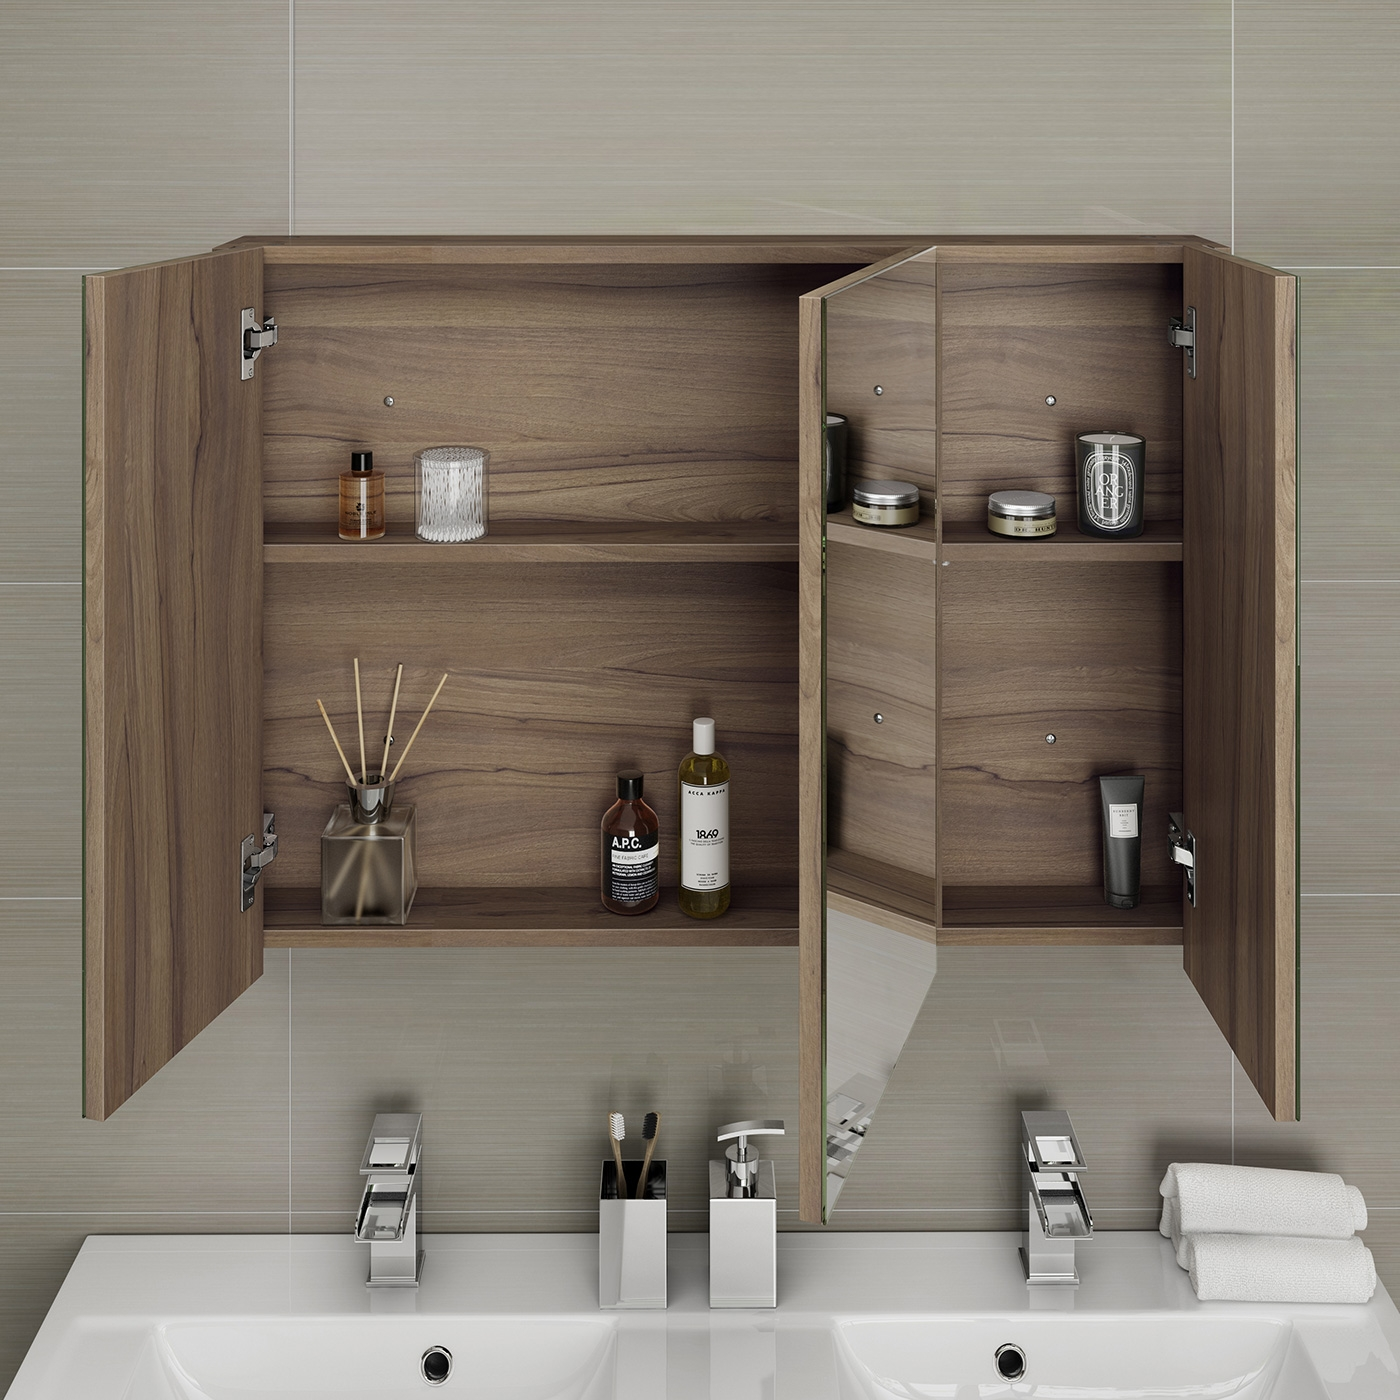 Walnut Effect Bathroom Mirrormodern triple door bathroom mirror cabinet storage unit furniture